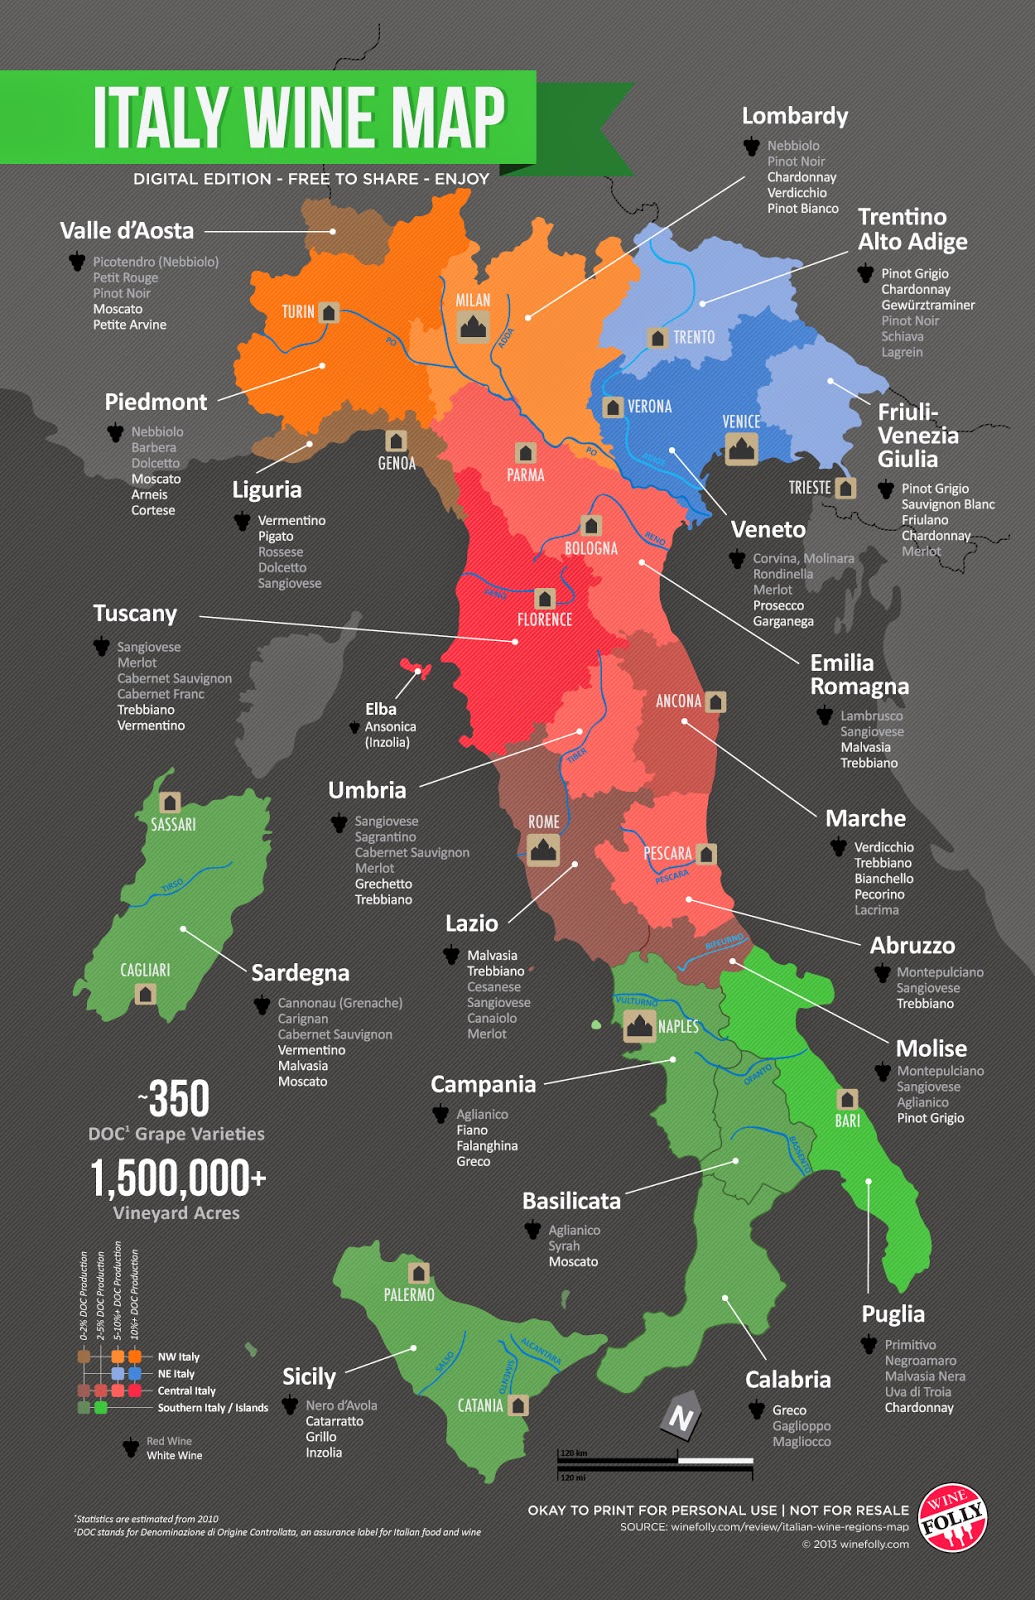 Map of Italy including Piedmont